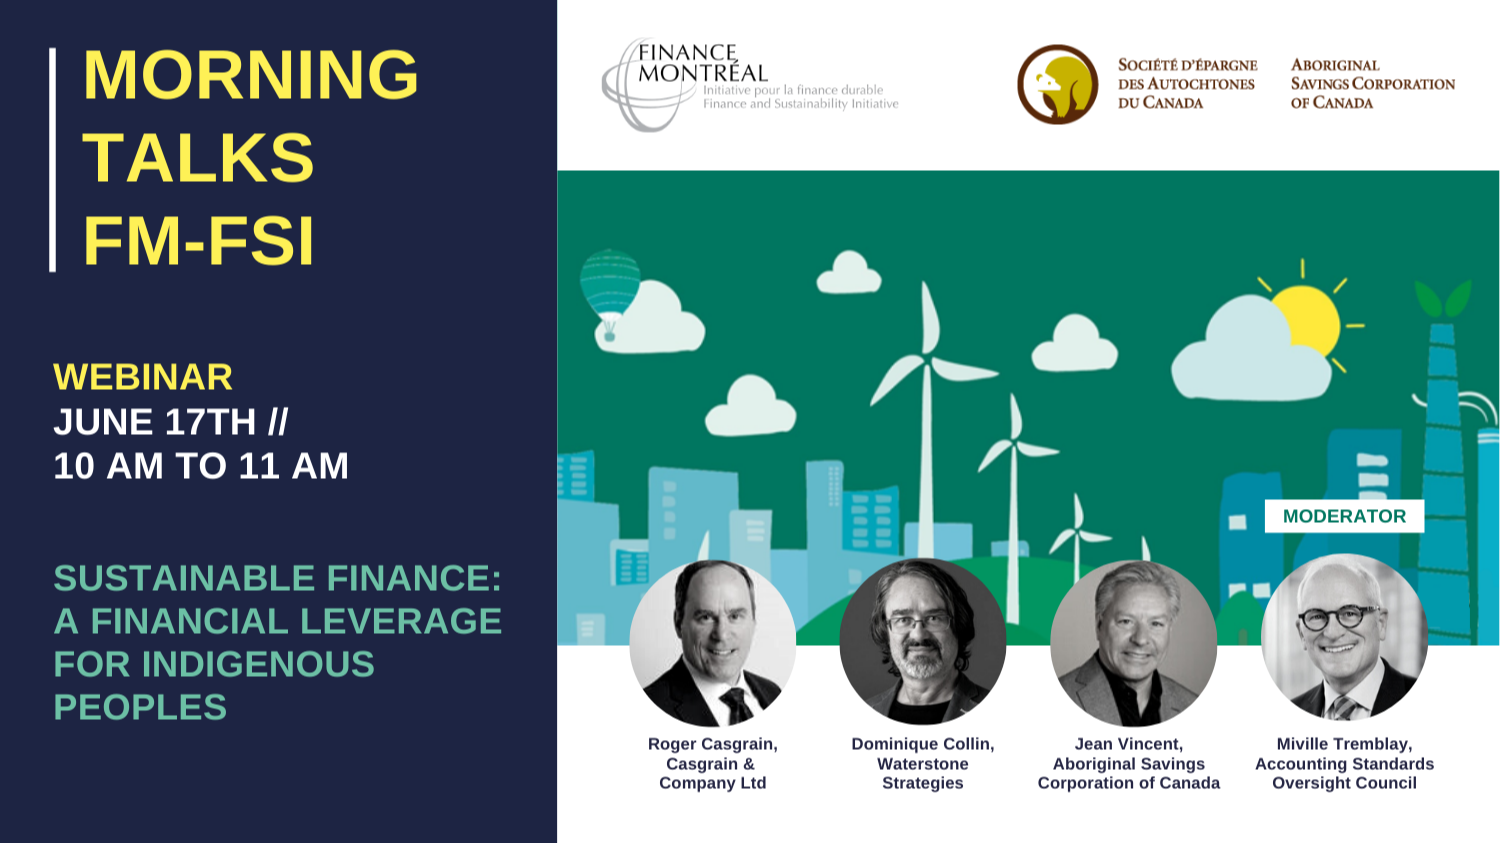 Morning Talks FM-FSI - « Sustainable finance: A financial leverage for indigenous peoples »